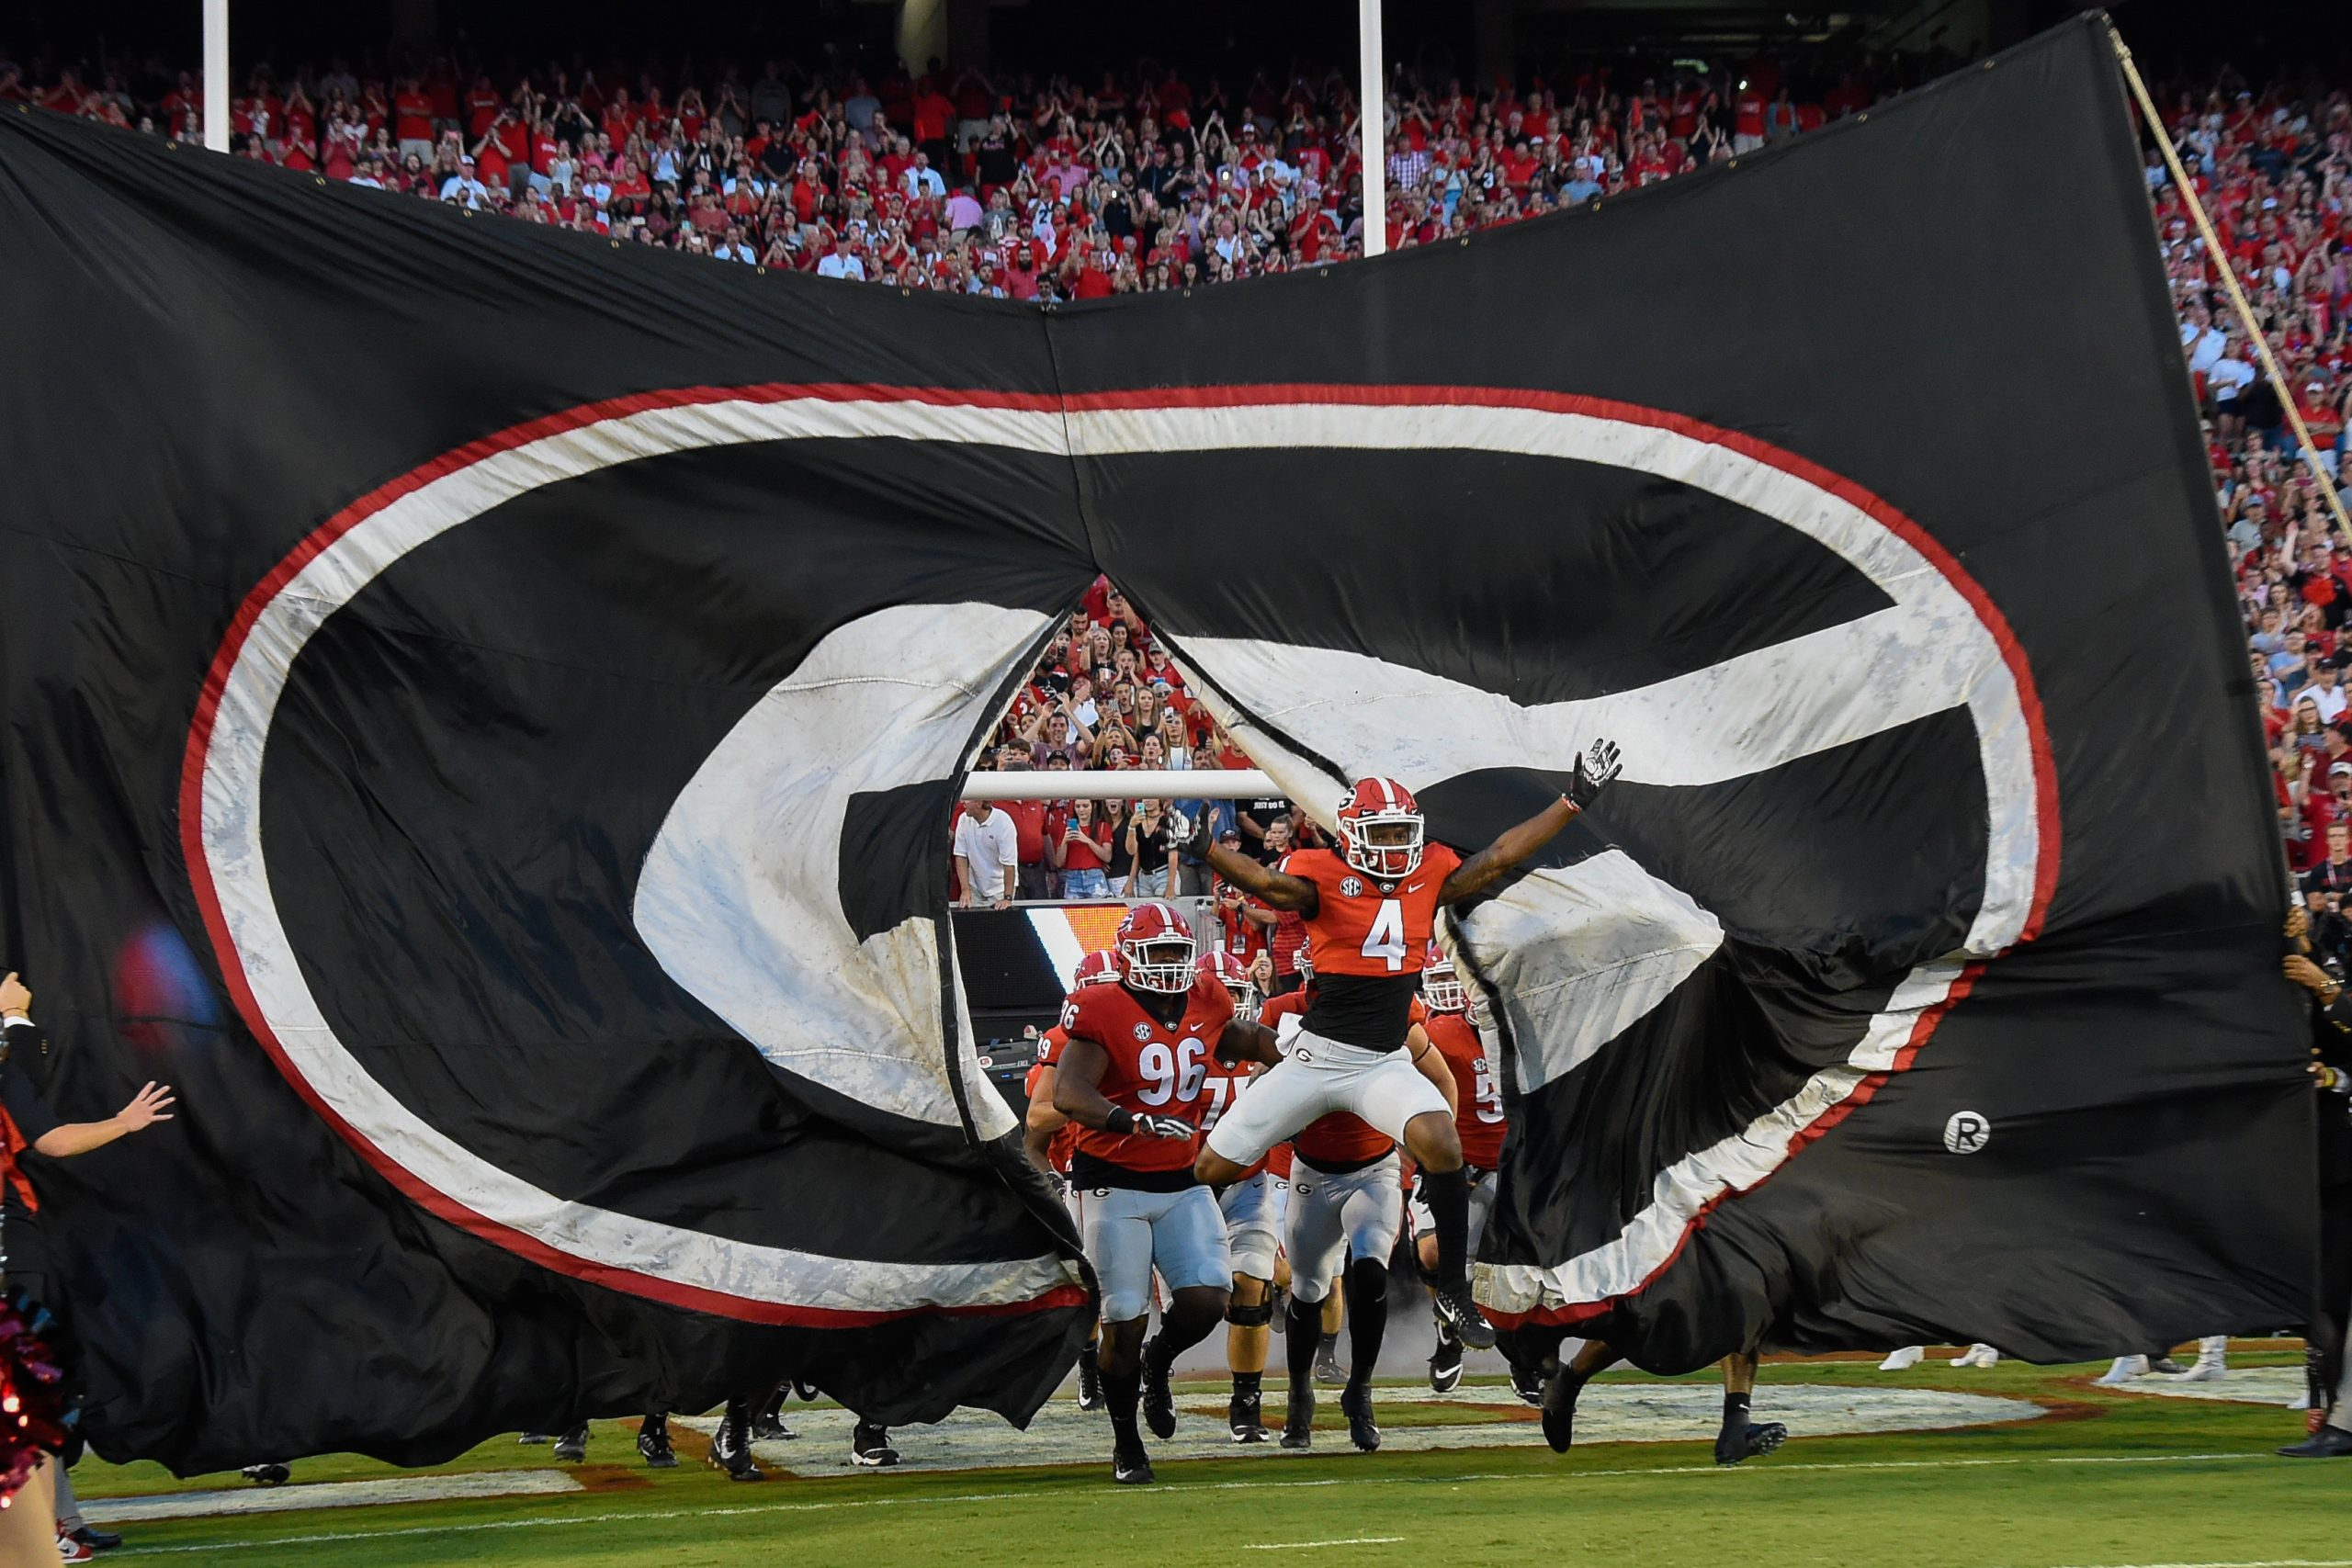 Georgia Adds Conference Usa Opponent To 2021 Schedule Regarding University Of South Florida Calendar 2021